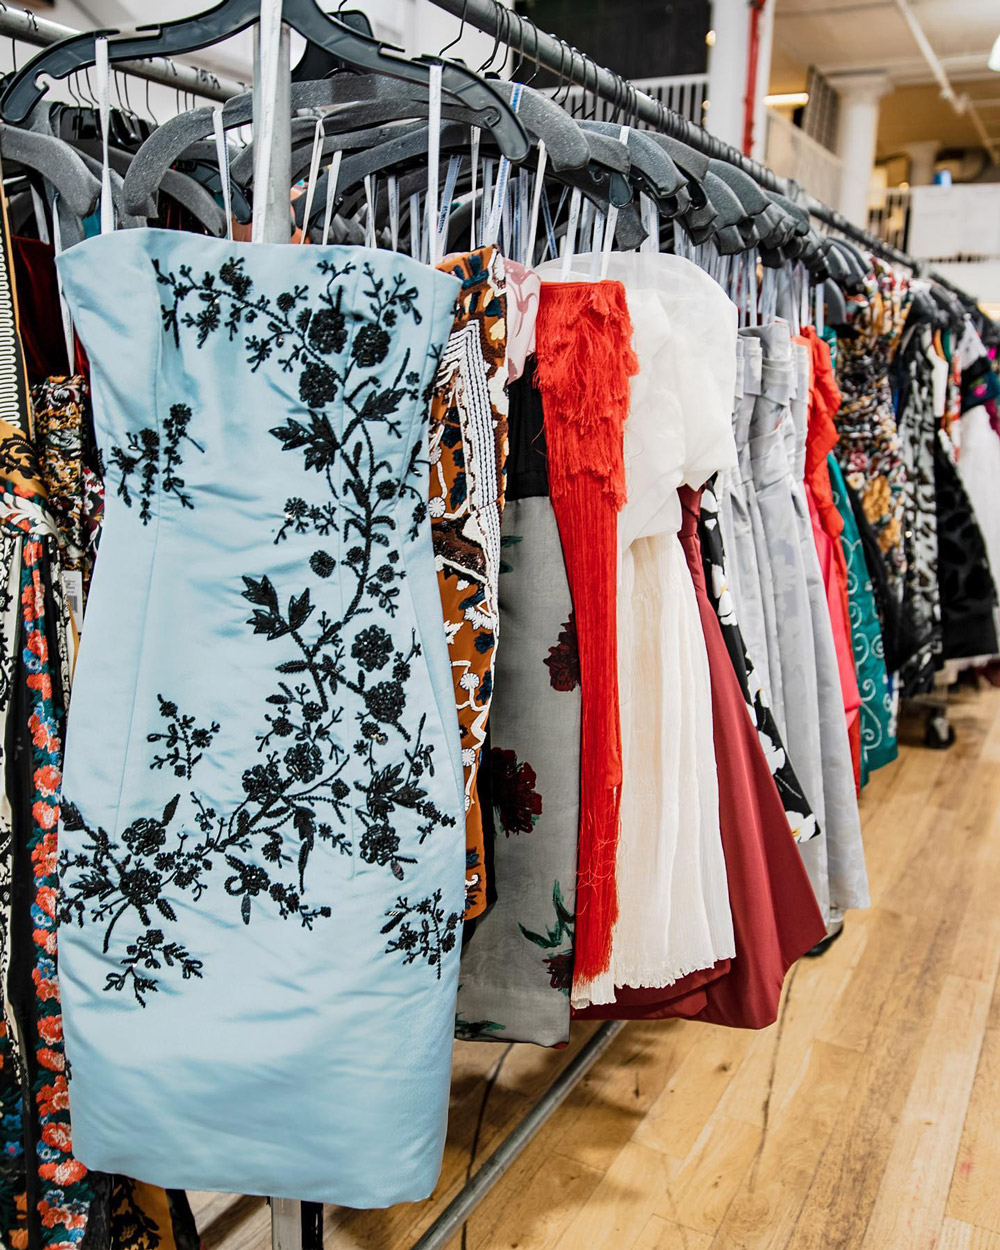 Oscar de la Renta Sample Sale in Images